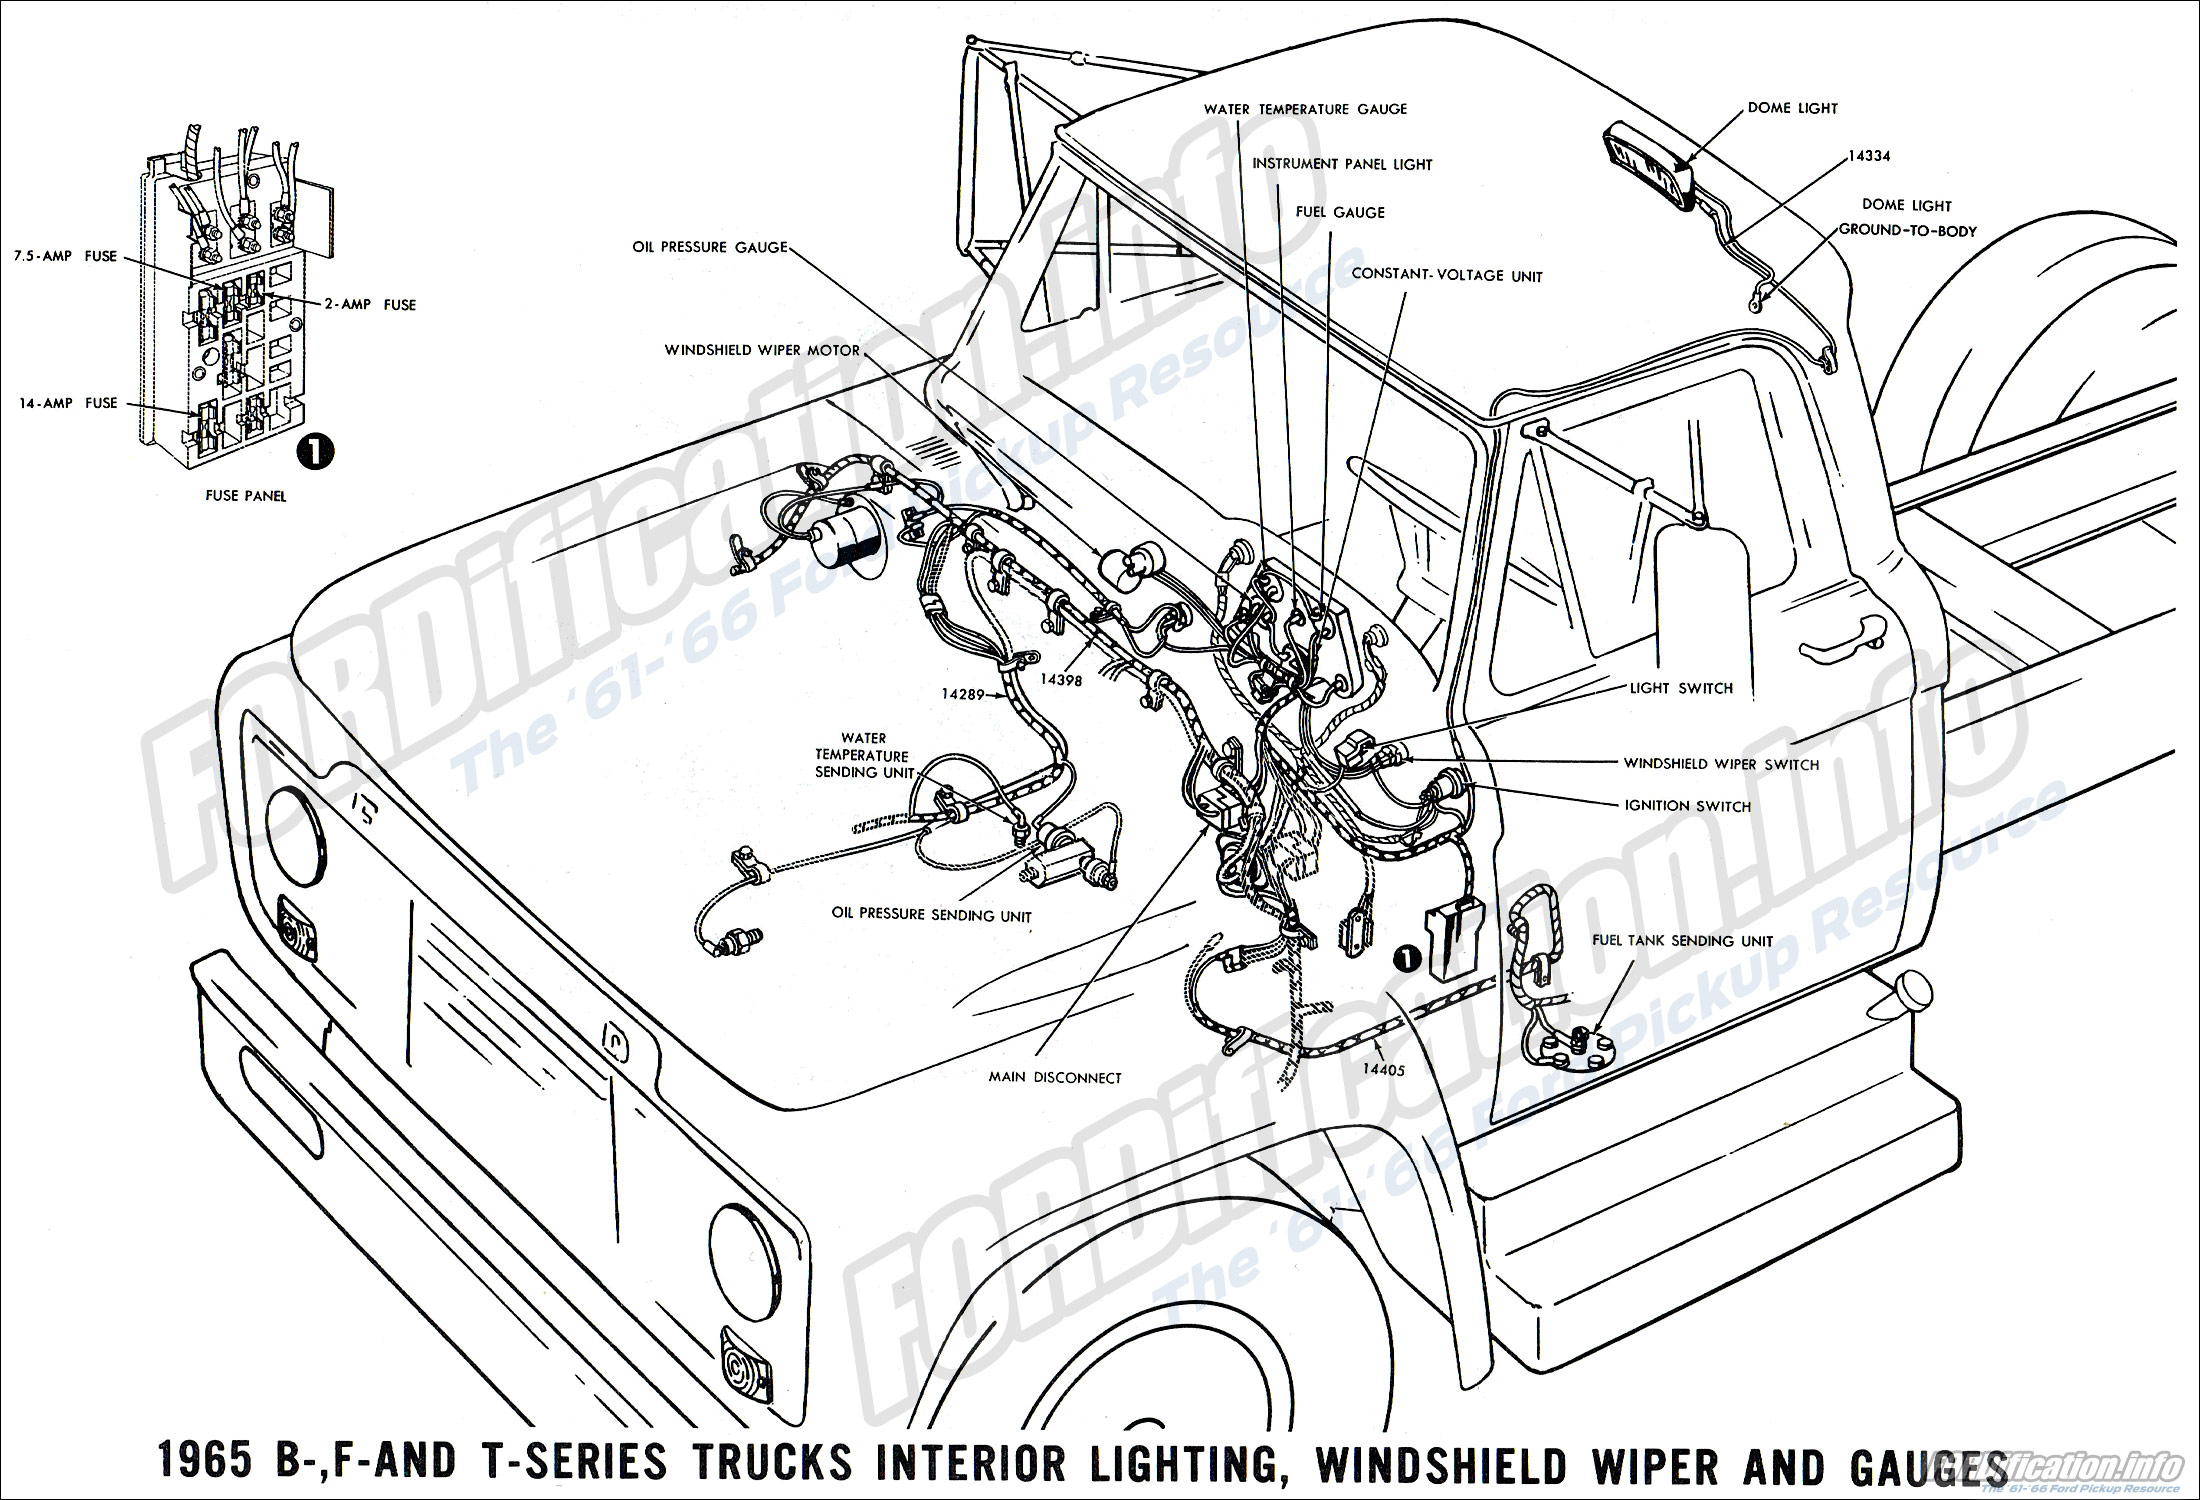 Wrg 5168 1965 Ford F250 Wiring Diagram